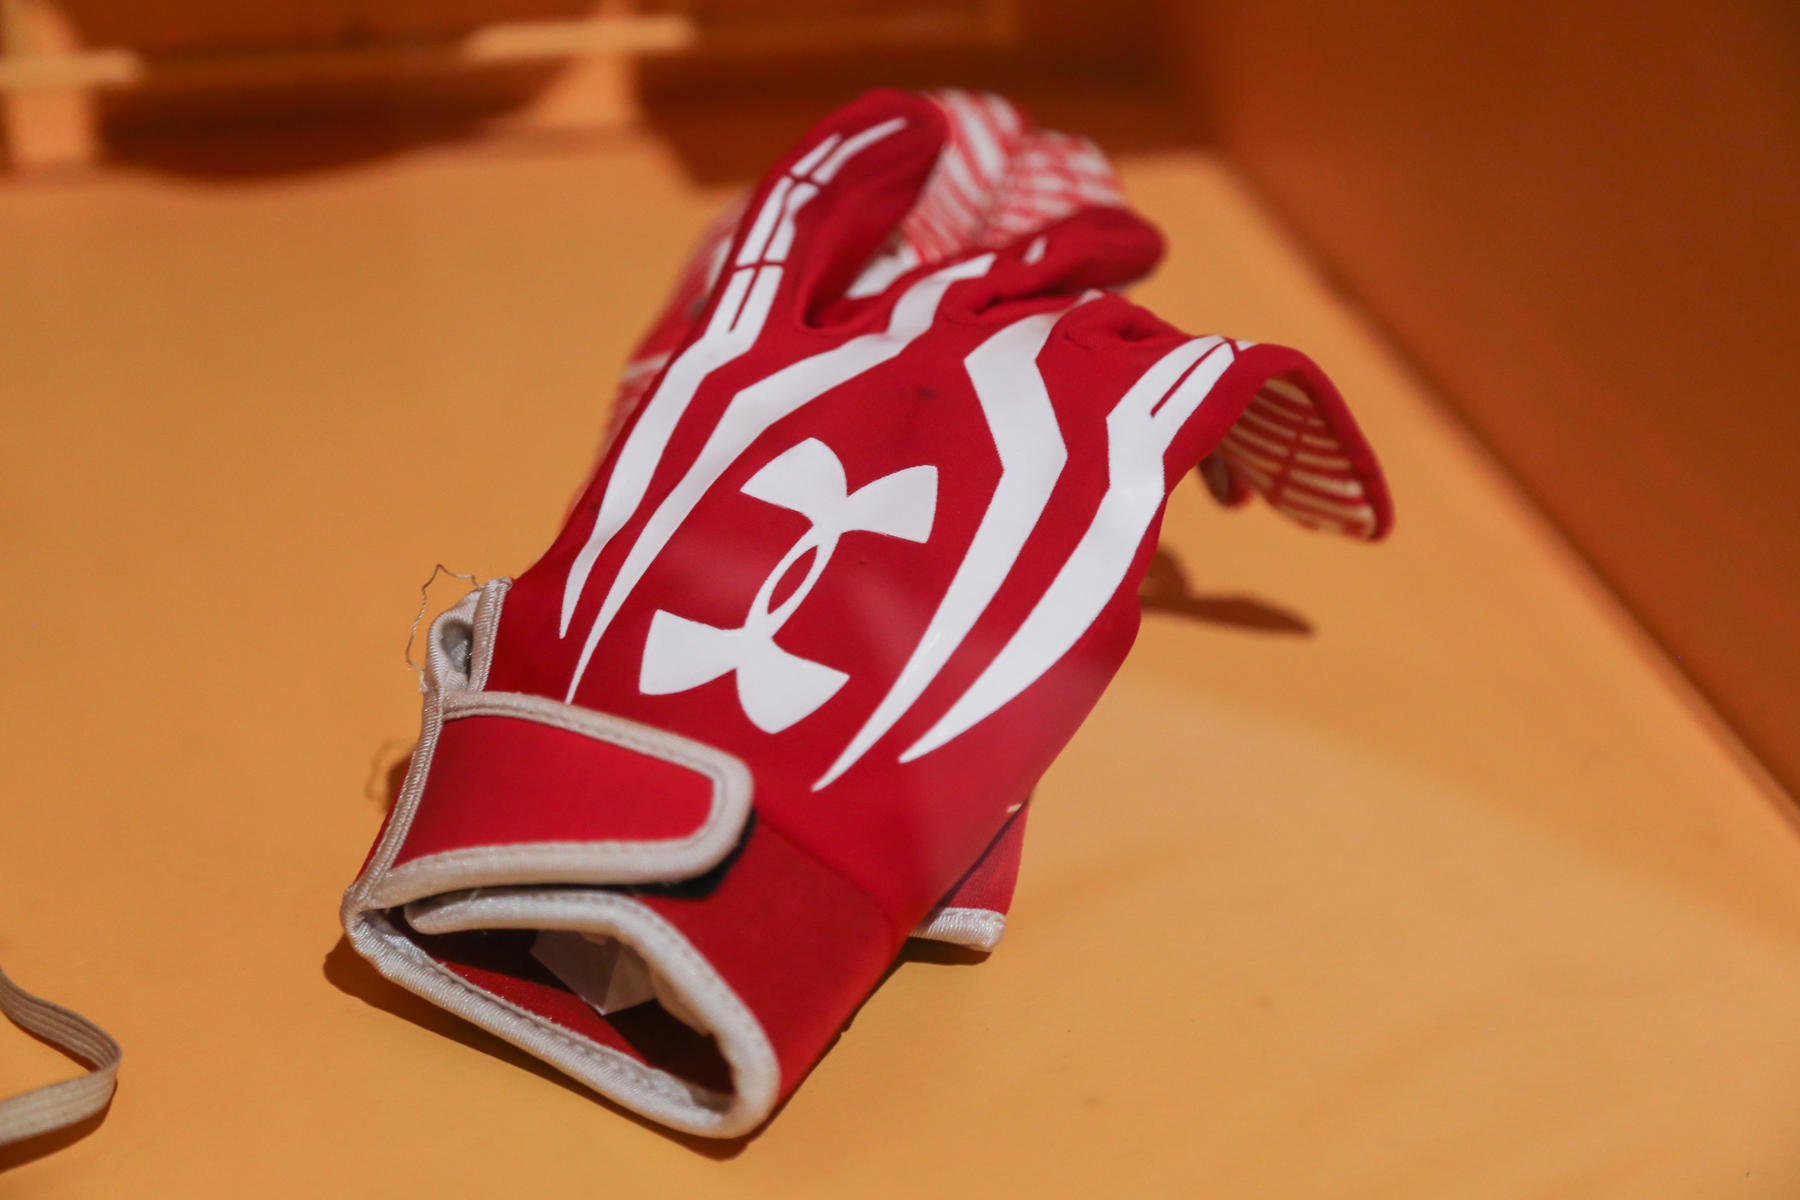 Defense is one of the most challenging aspects of beep baseball. To record an out, the fielder must have possession of the ball in hand and off the ground before the batter reaches base. Brandon Chesser used this glove to record the final out of the 2014 NBBA World Series. B-6-2015 (Parker Fish / National Baseball Hall of Fame)